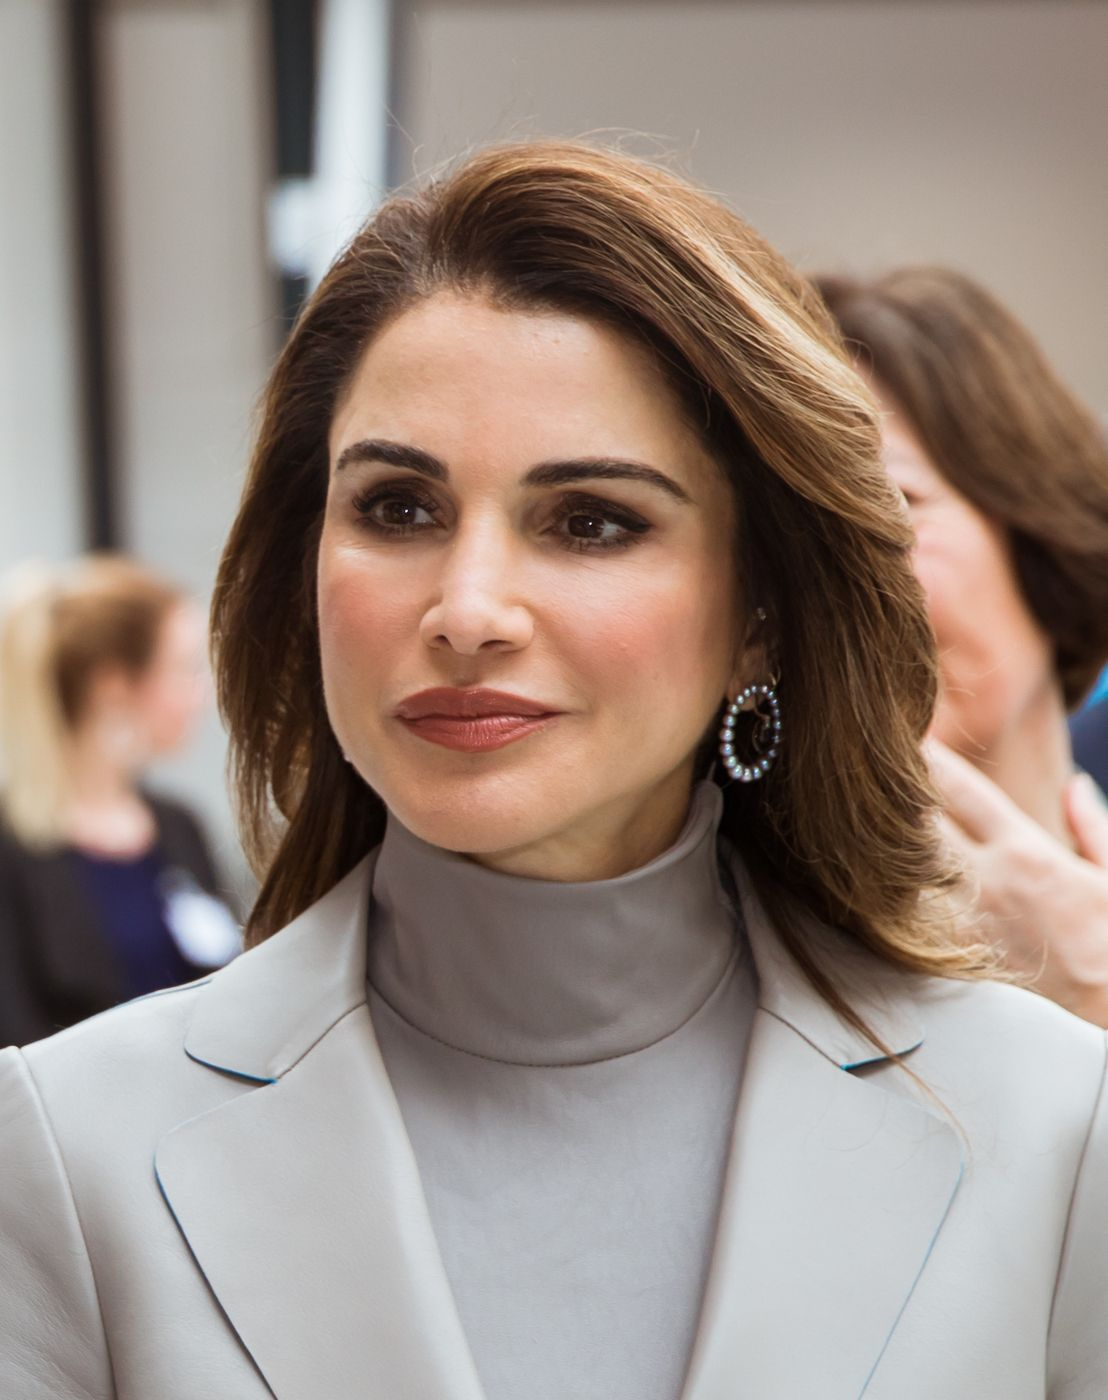 Image result for queen rania 2018 hair